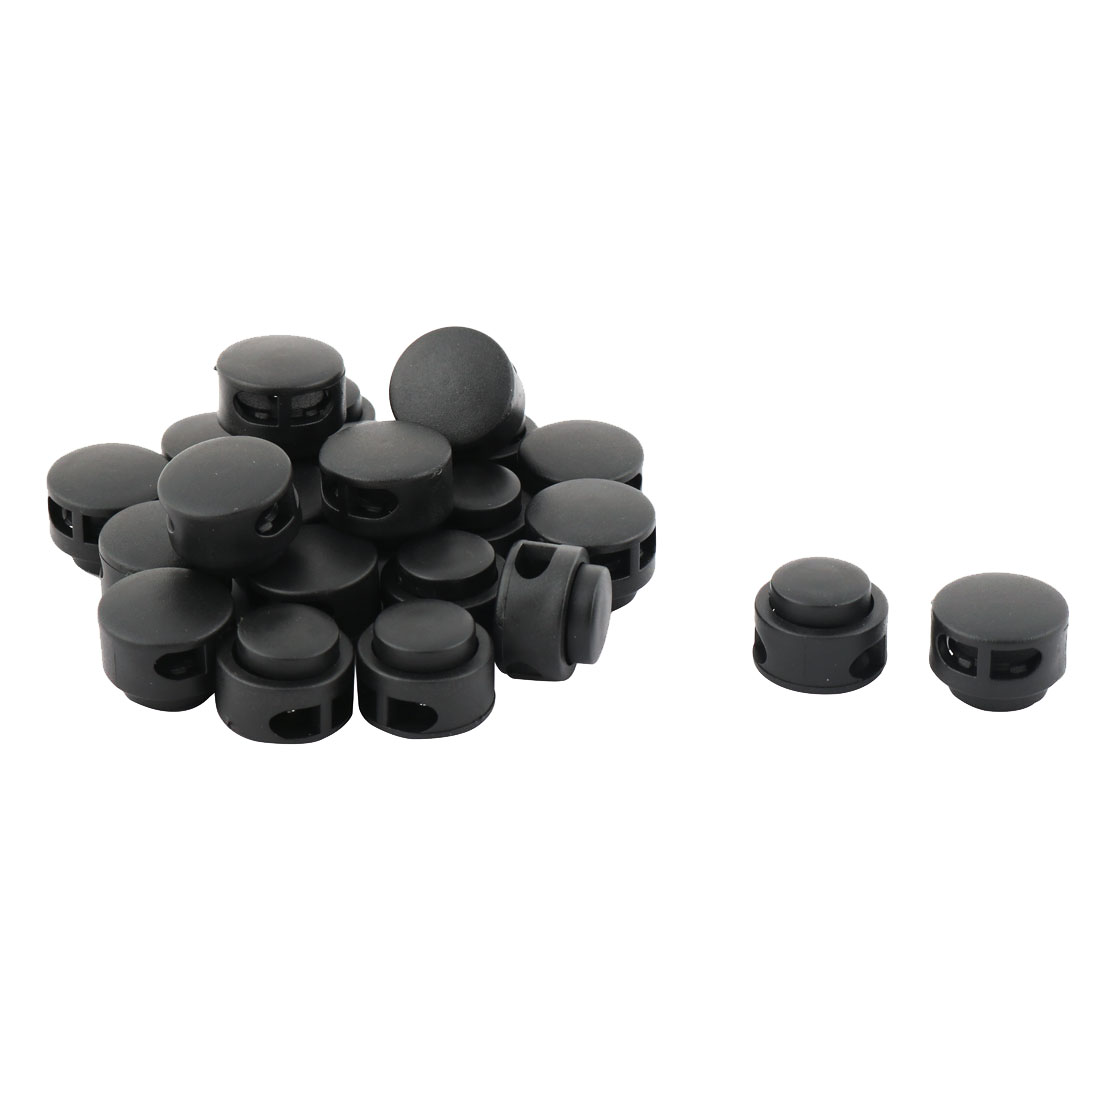 Plastic Cylinder Double Hole Toggle Stopper Cord String Adjustive Lock Black 20 Pcs